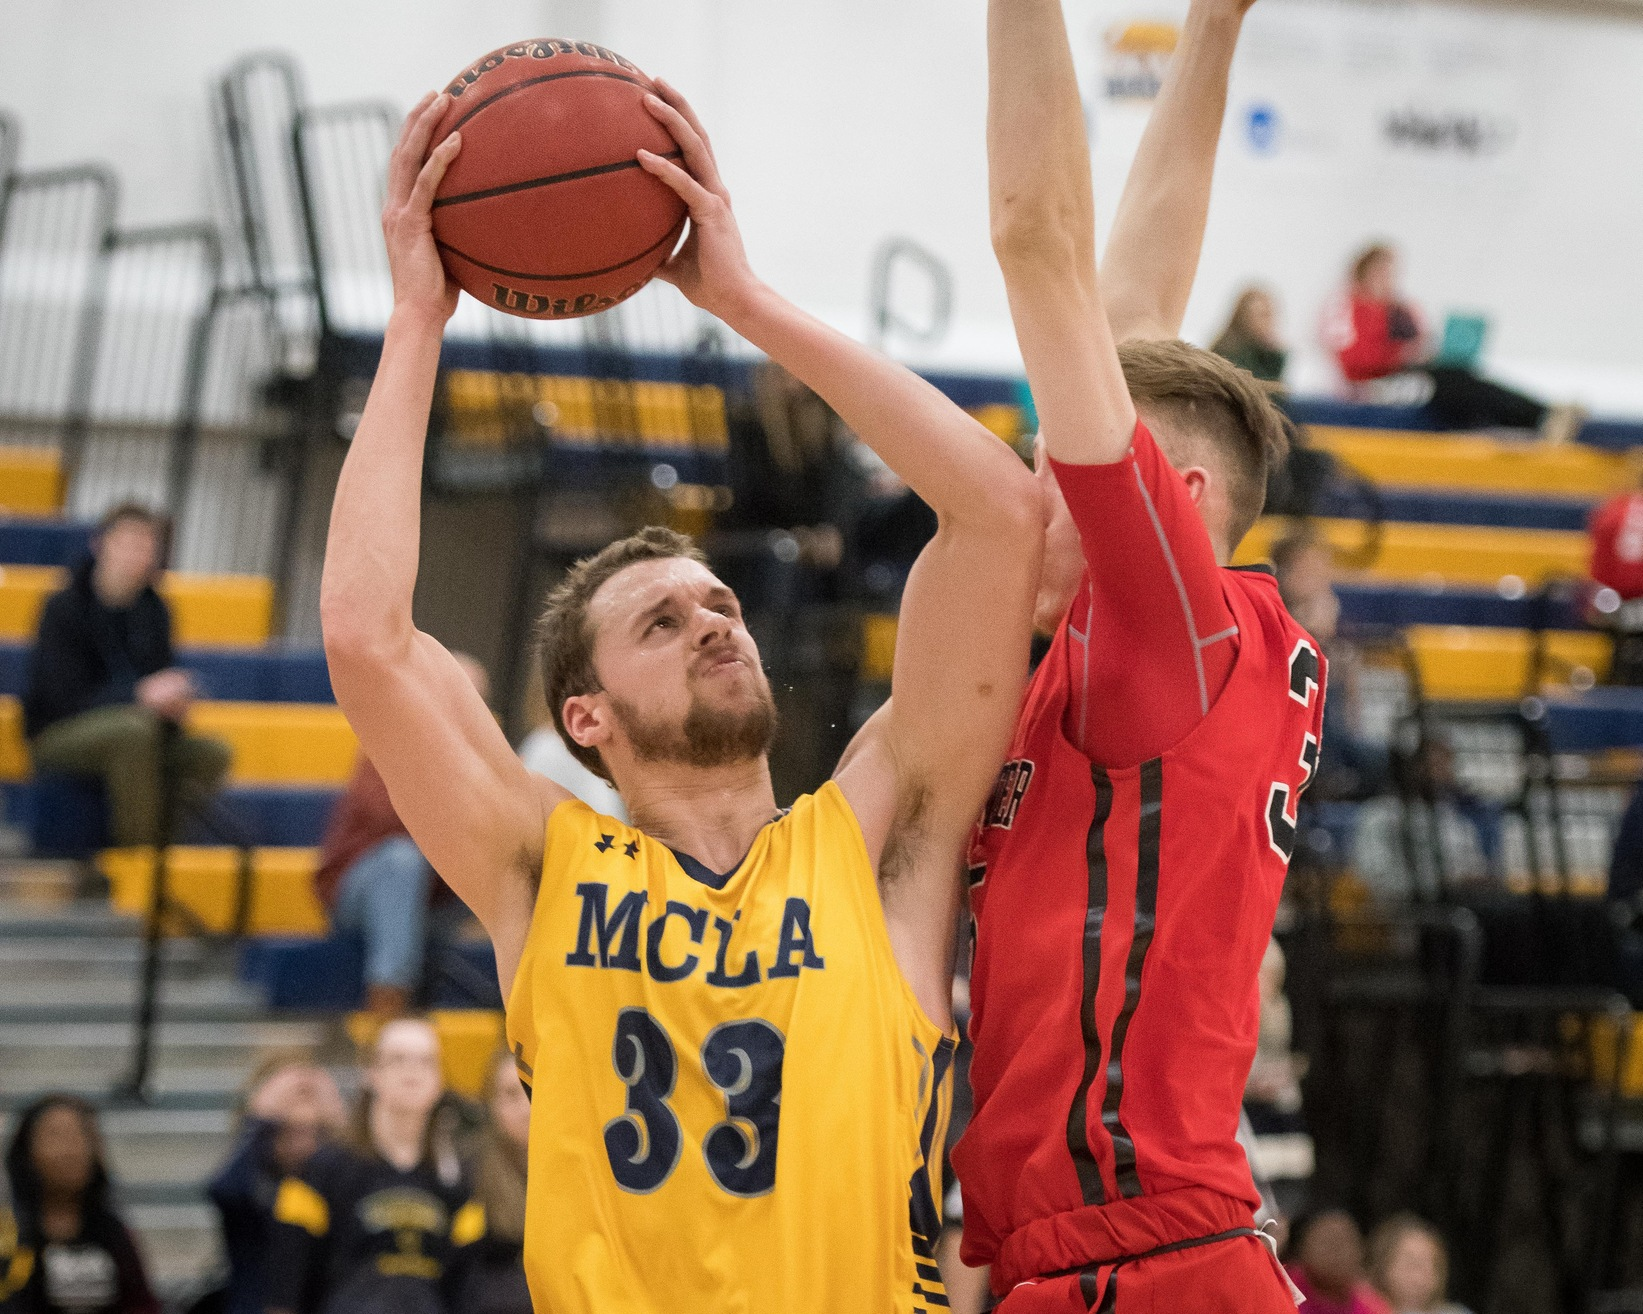 Turnovers plague MCLA Men's Basketball in 70-62 loss to Pine Manor